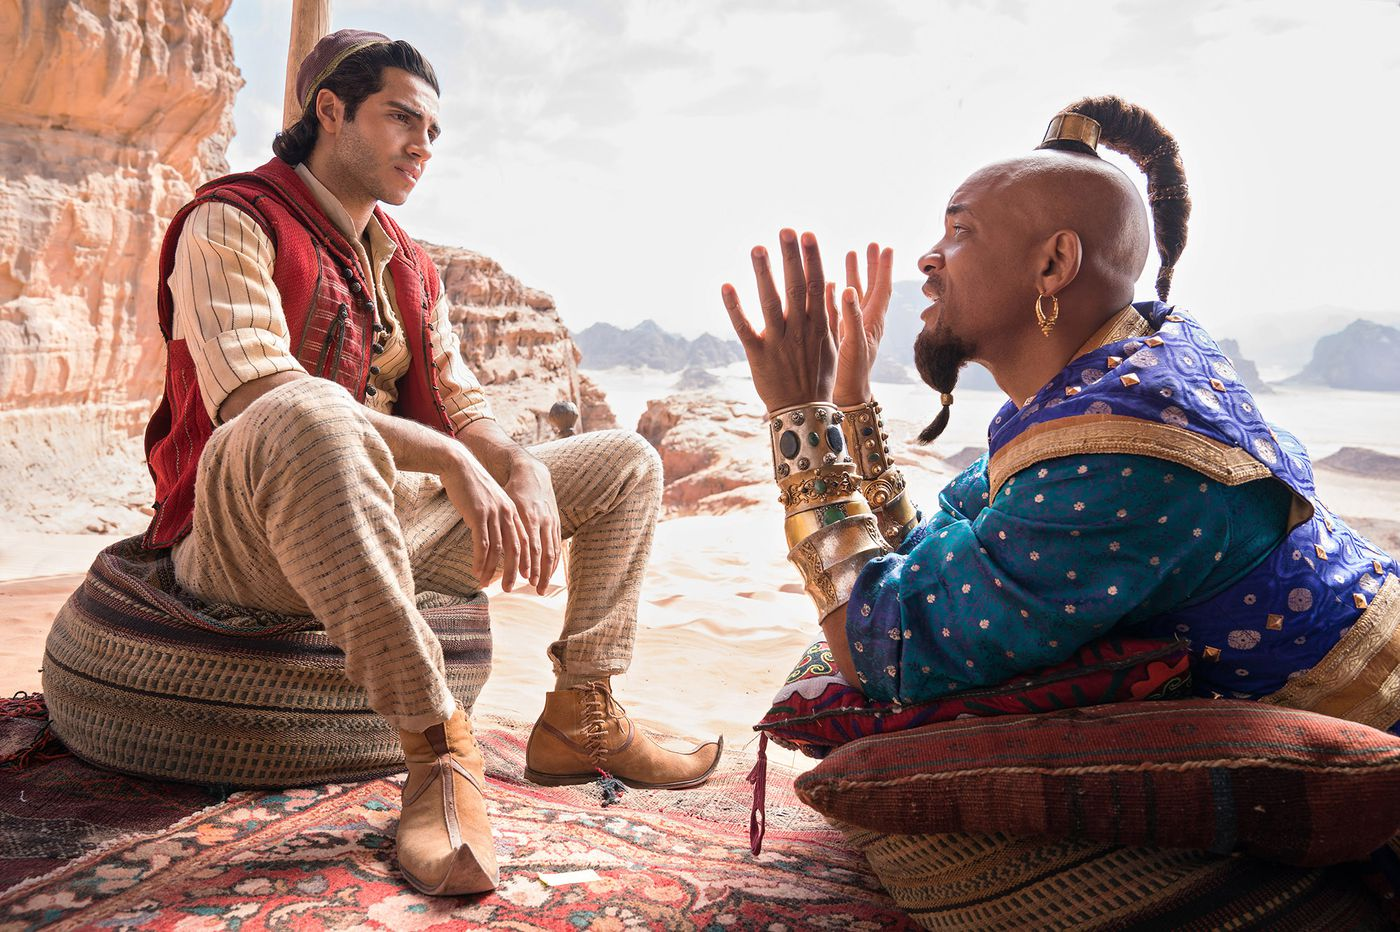 'Aladdin' review: It's not a whole new world, but some of original magic rubs off